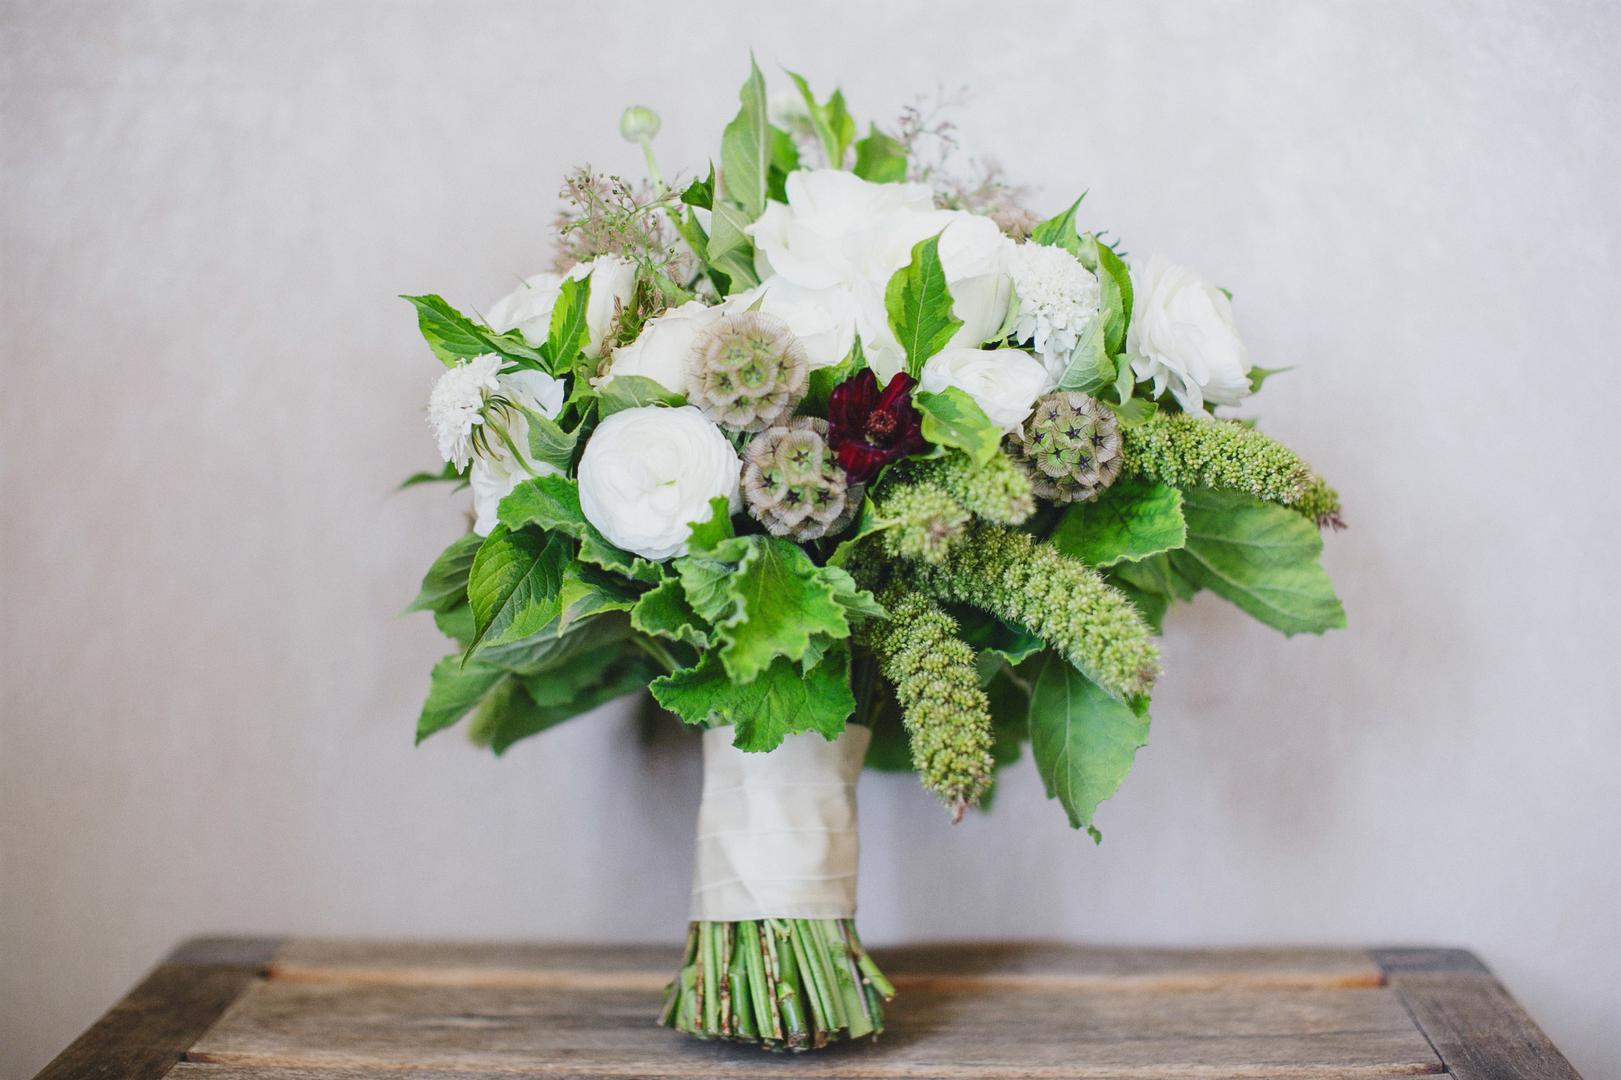 Wedding Flowers - Adding Green to All-White Bouquets - Inside Weddings